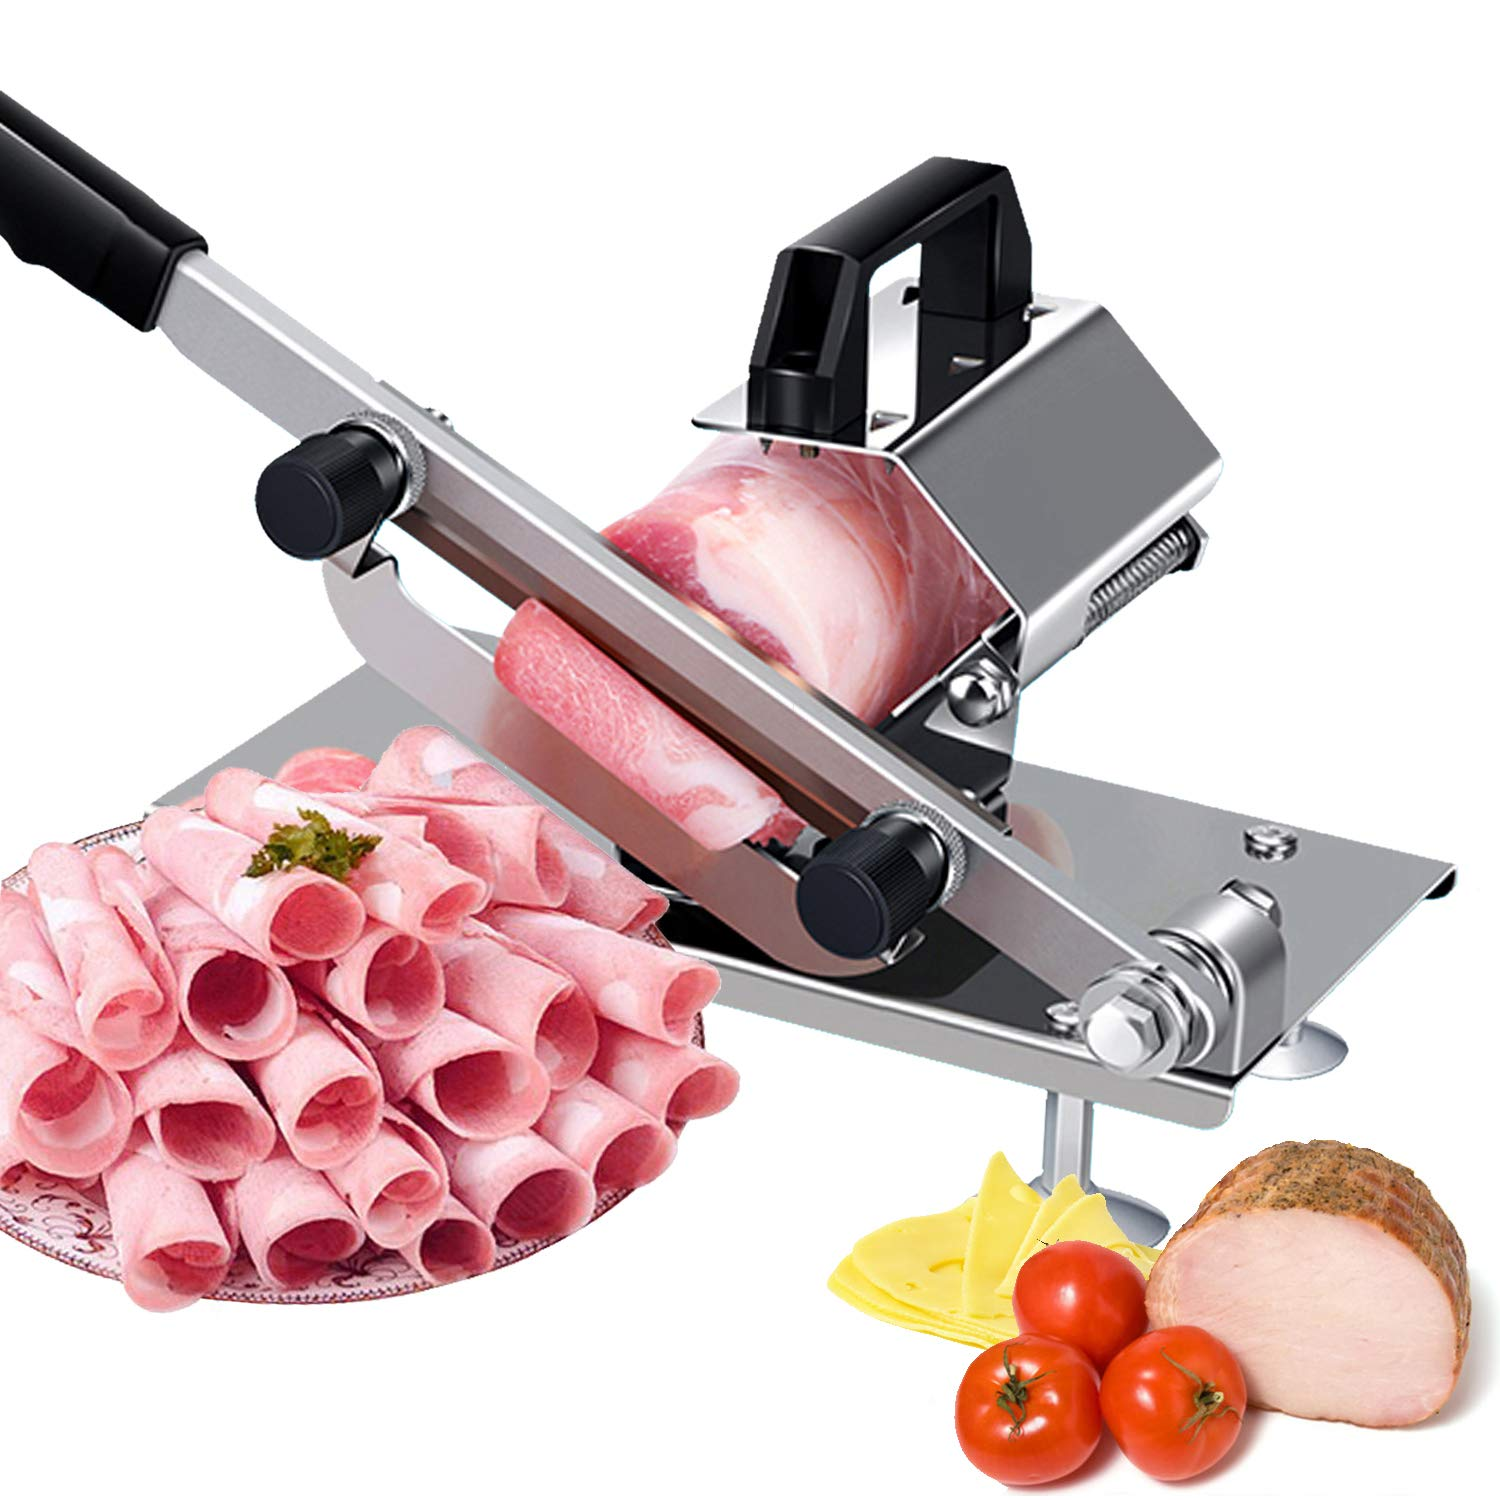 SUPER DEAL Manual Frozen Meat Slicer, Meat Cheese Food Slicer Vegetable Slicing Machine Stainless Steel Meat Cutter Beef Mutton Roll Meat Cleaver for Deli Home Kitchen